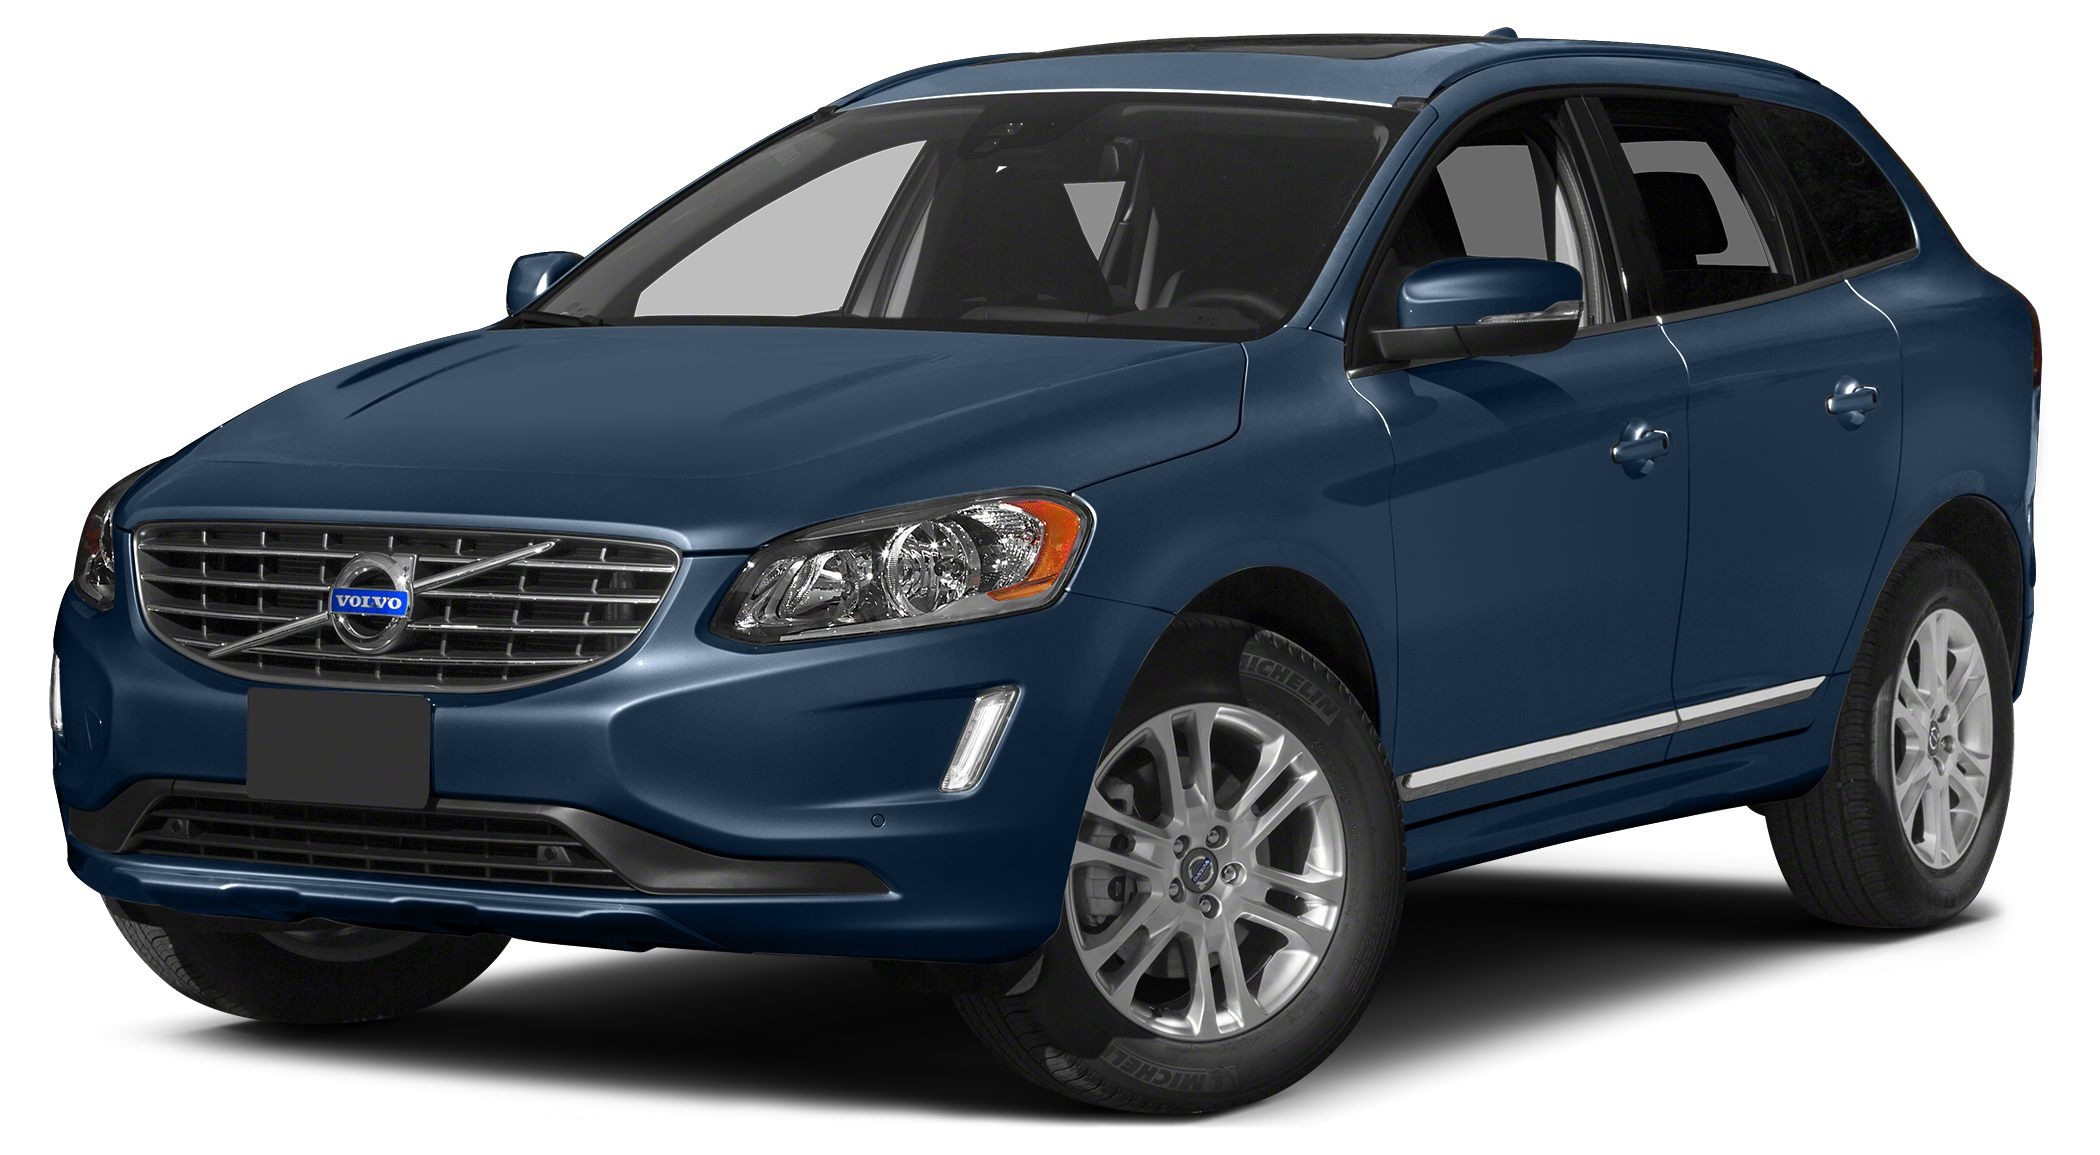 2015 Volvo XC60 T6 Miles 37335Color Caspian Blue Metallic Stock LH1920A VIN YV4902RK6F266509